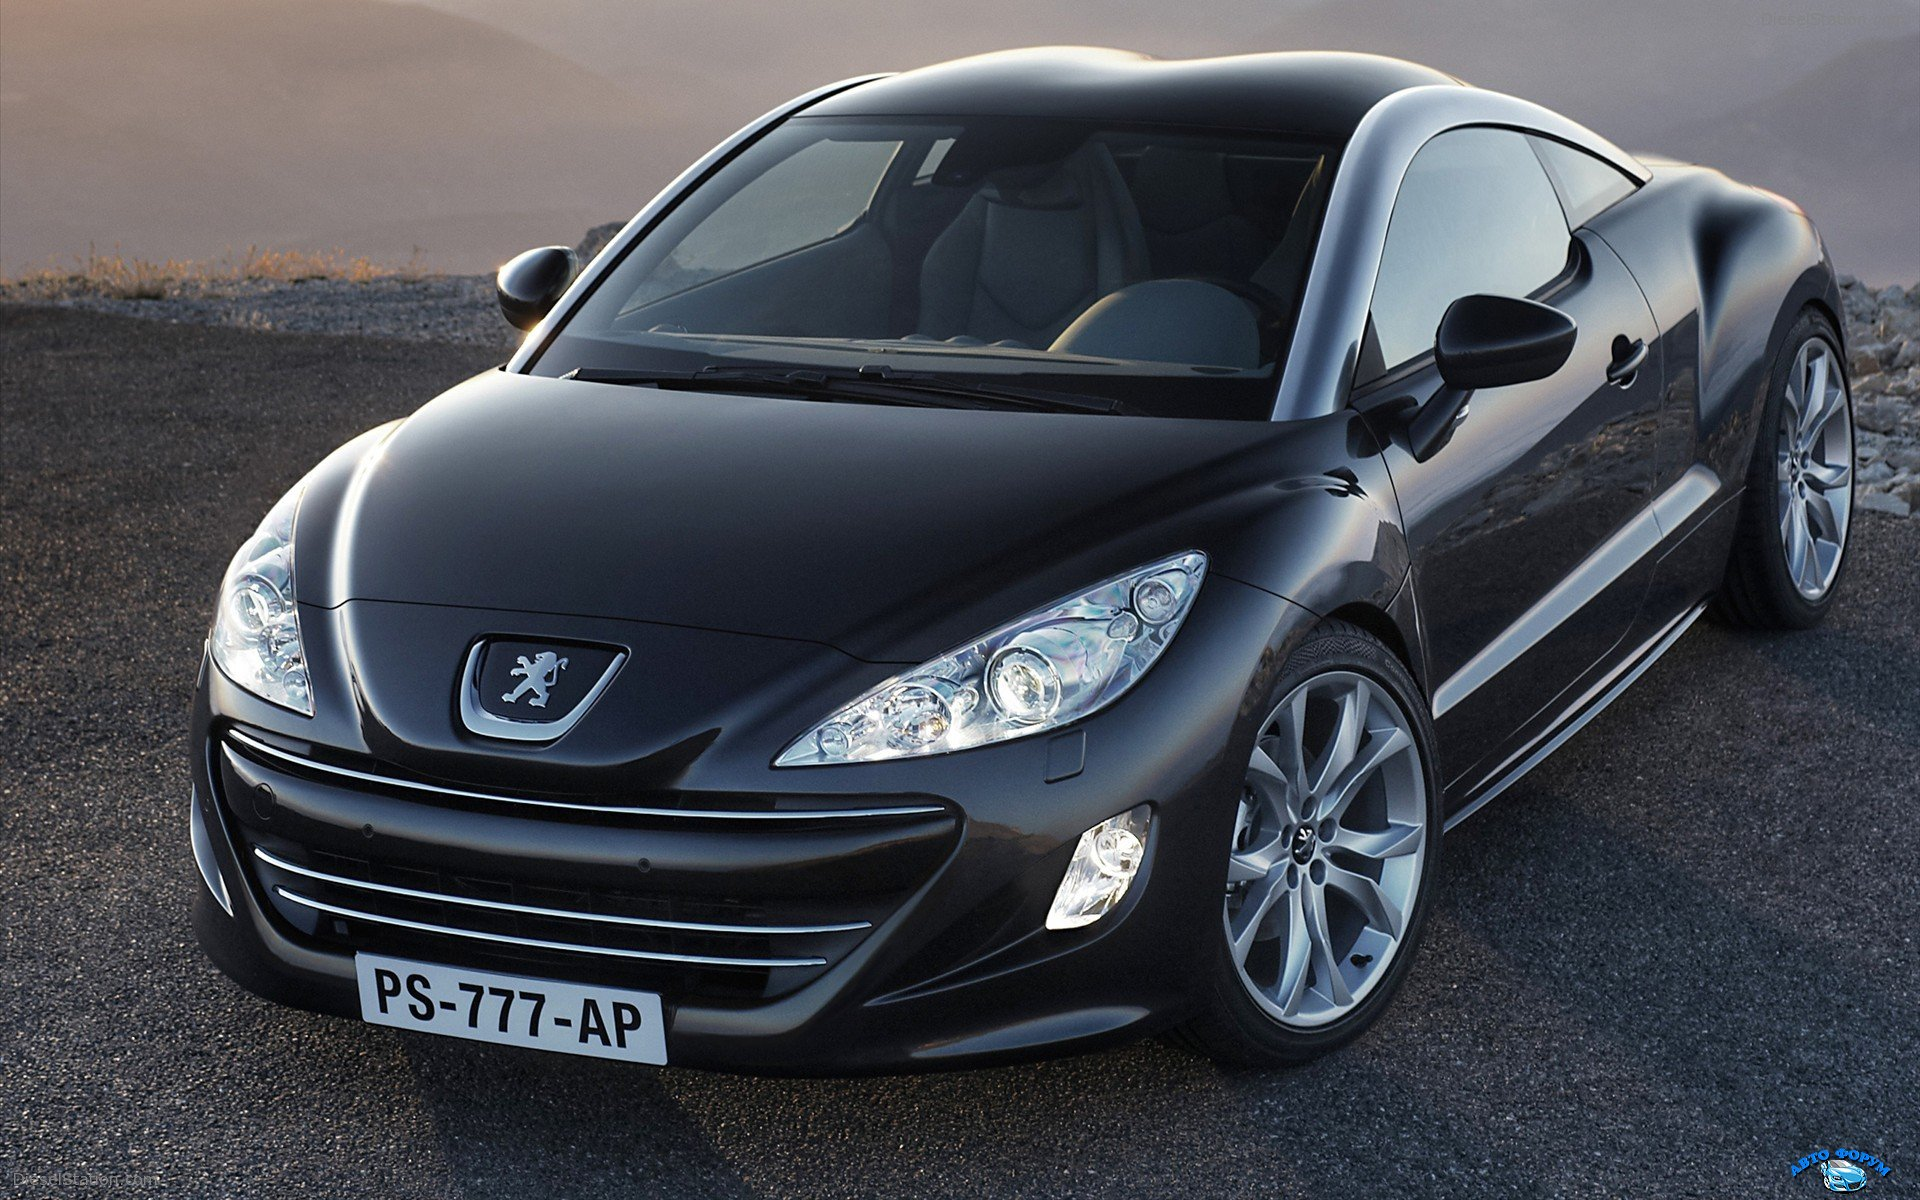 The-Peugeot-RCZ-A-Dynamic-New-Chapter-widescreen-02.jpg